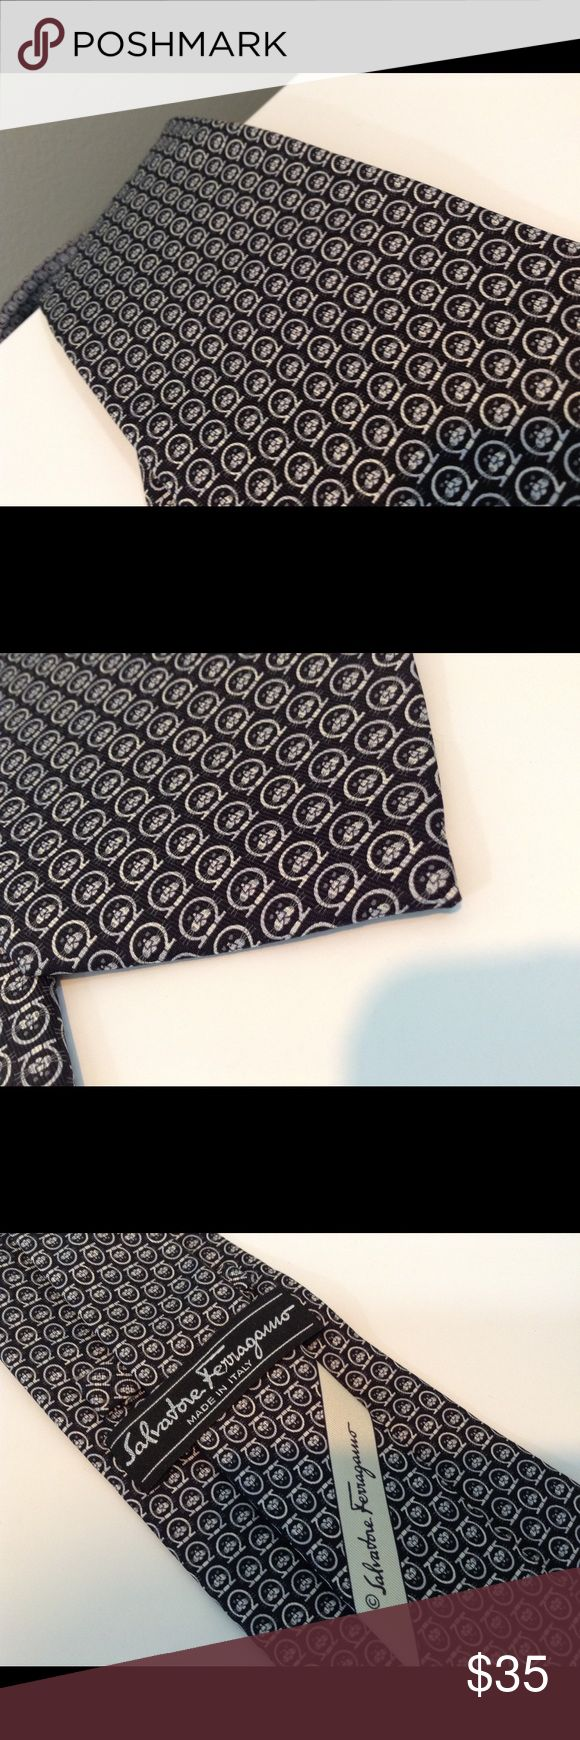 Salvatore Ferragamo Necktie with Cat Face Design Salvatore Ferragamo necktie, black background with repeating design of tiny cat faces (or some other cute animal with whiskers). Made in Italy of 100% silk. Measures 56 in long x 3 3/8 at widest spot. Excellent condition. Ferragamo Accessories Ties